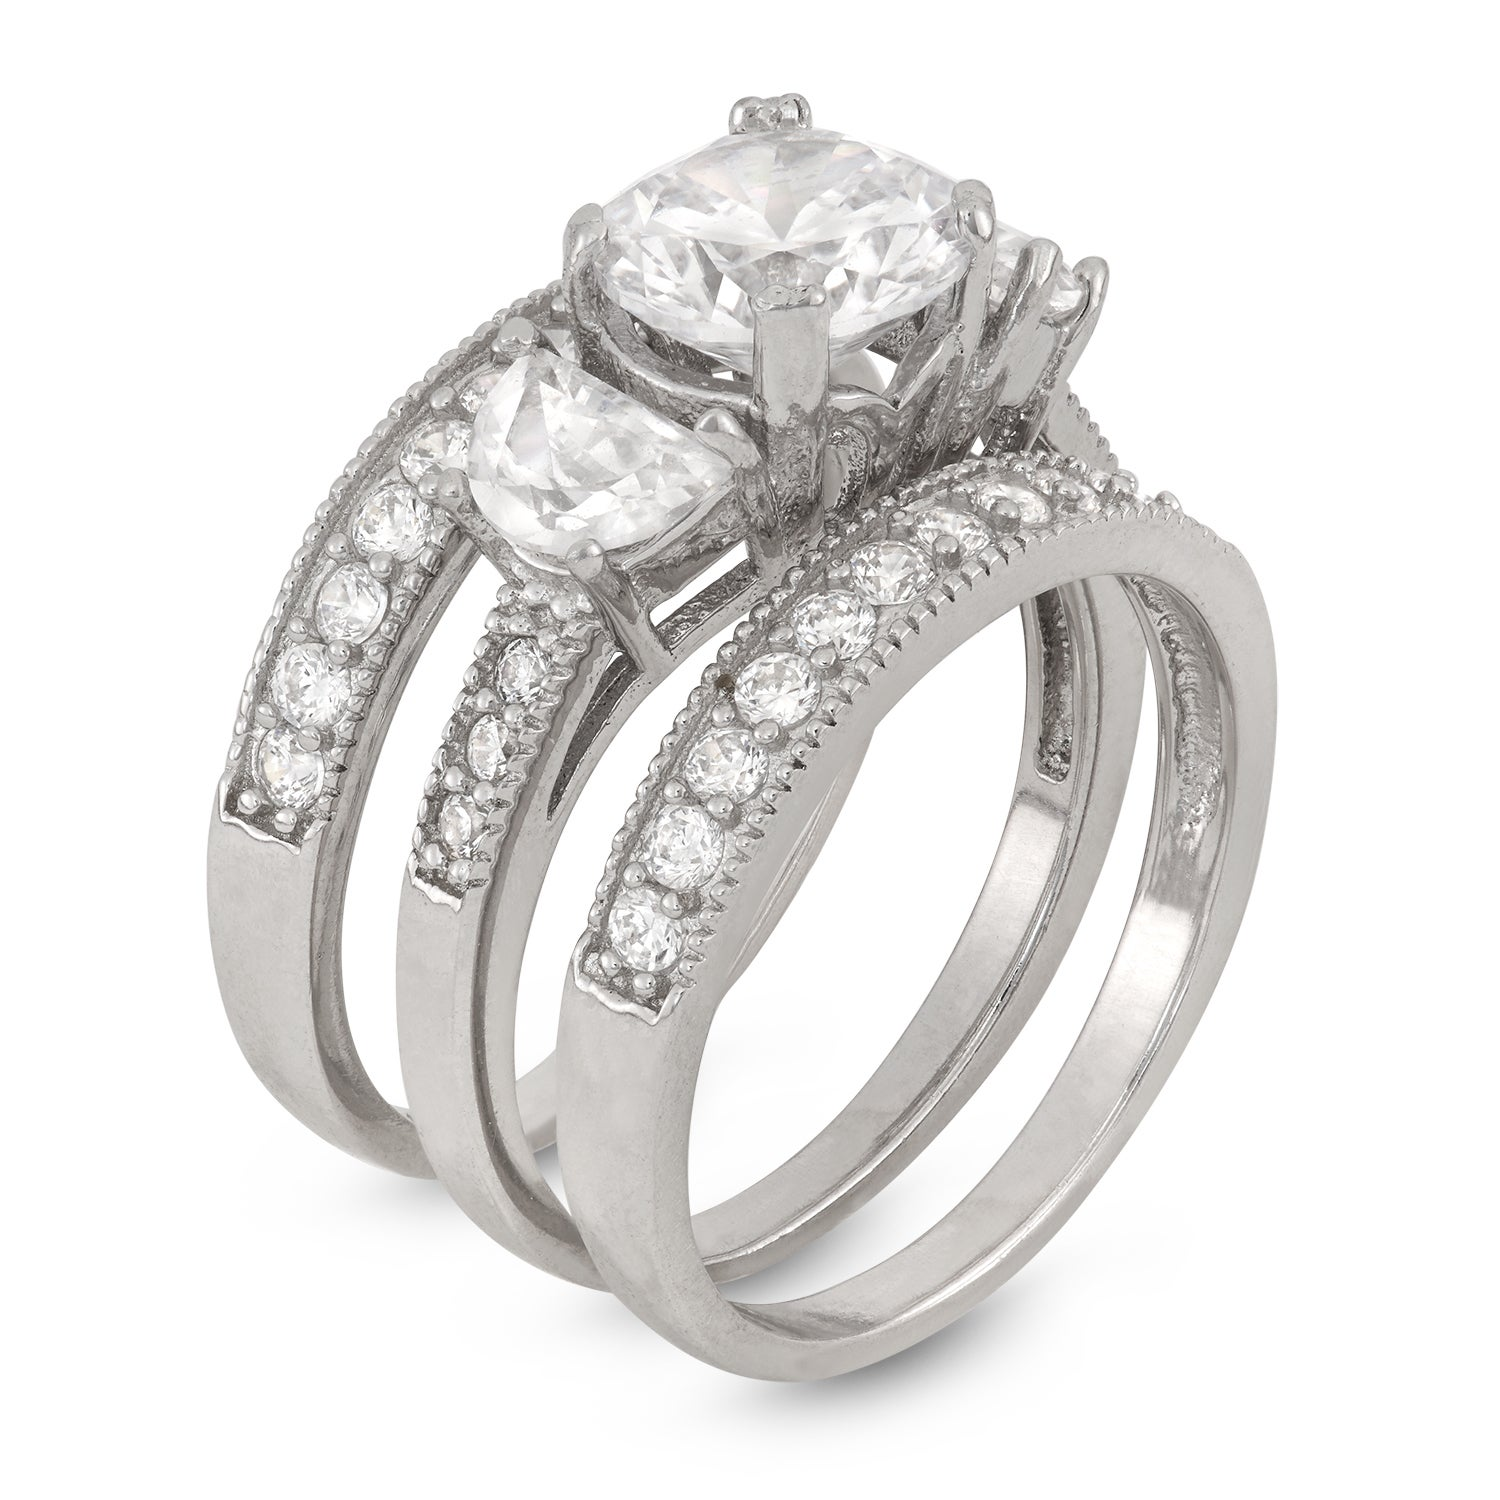 Sterling Silver 2ct TGW Round-cut Cubic Zirconia 3 Piece Embellished Bridal  Set Ring